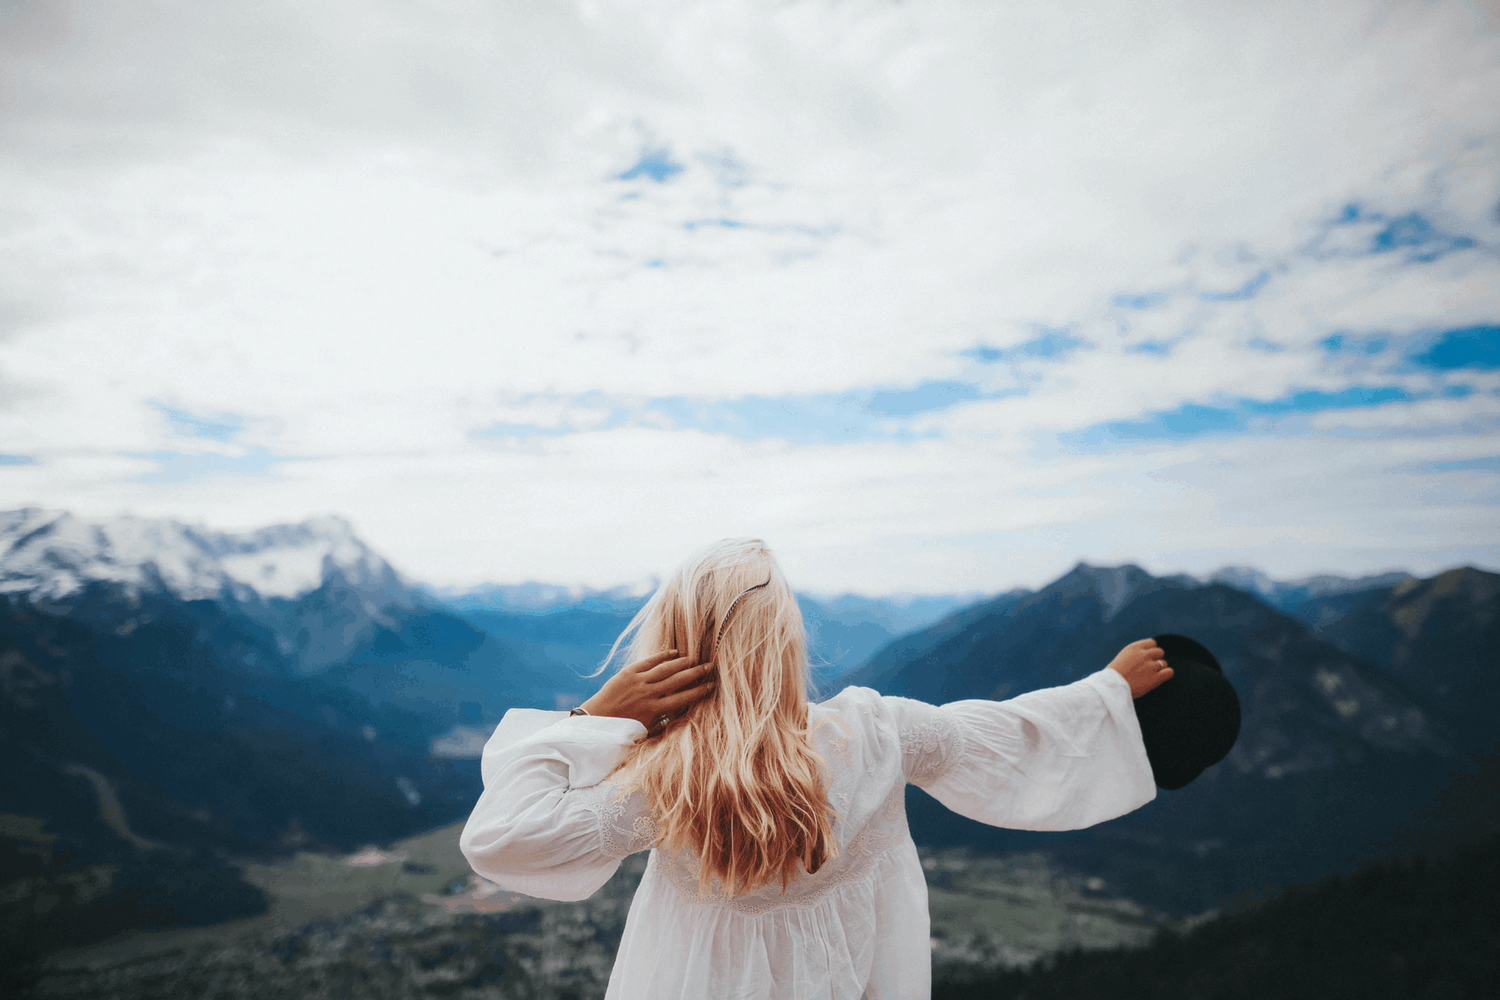 Why You Should Step Out of Your Comfort Zone